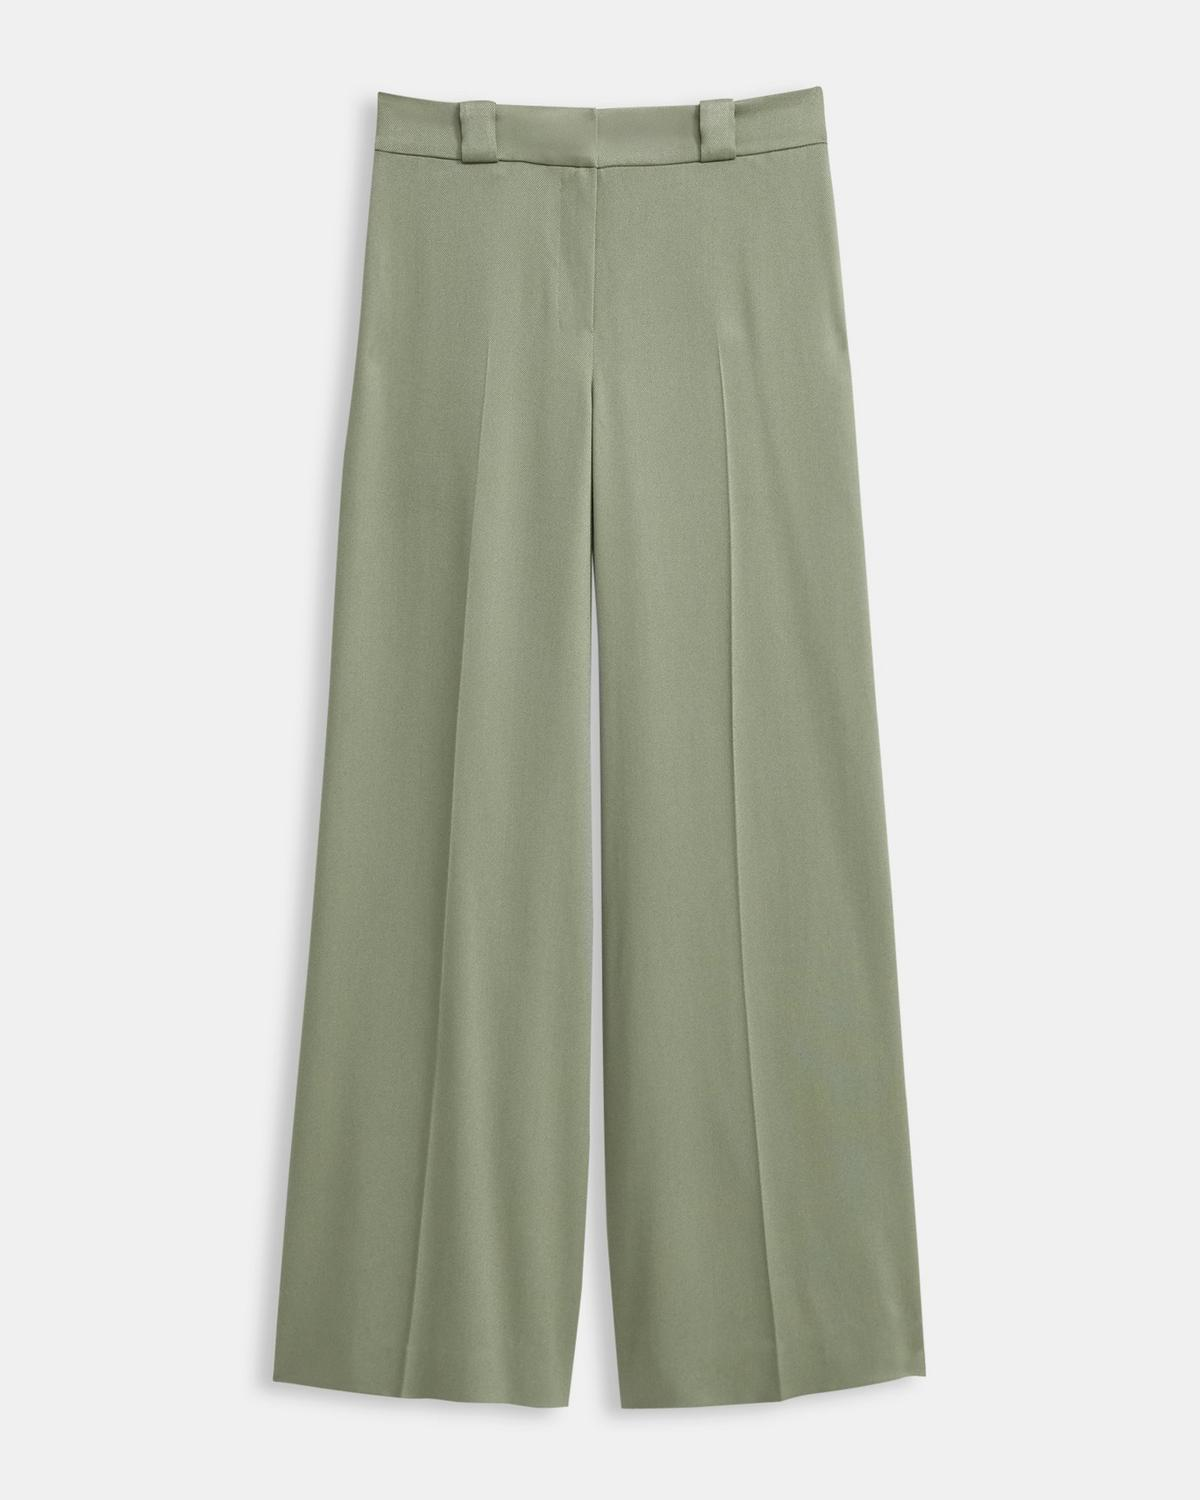 Draped Twill Fluid Wide Pant